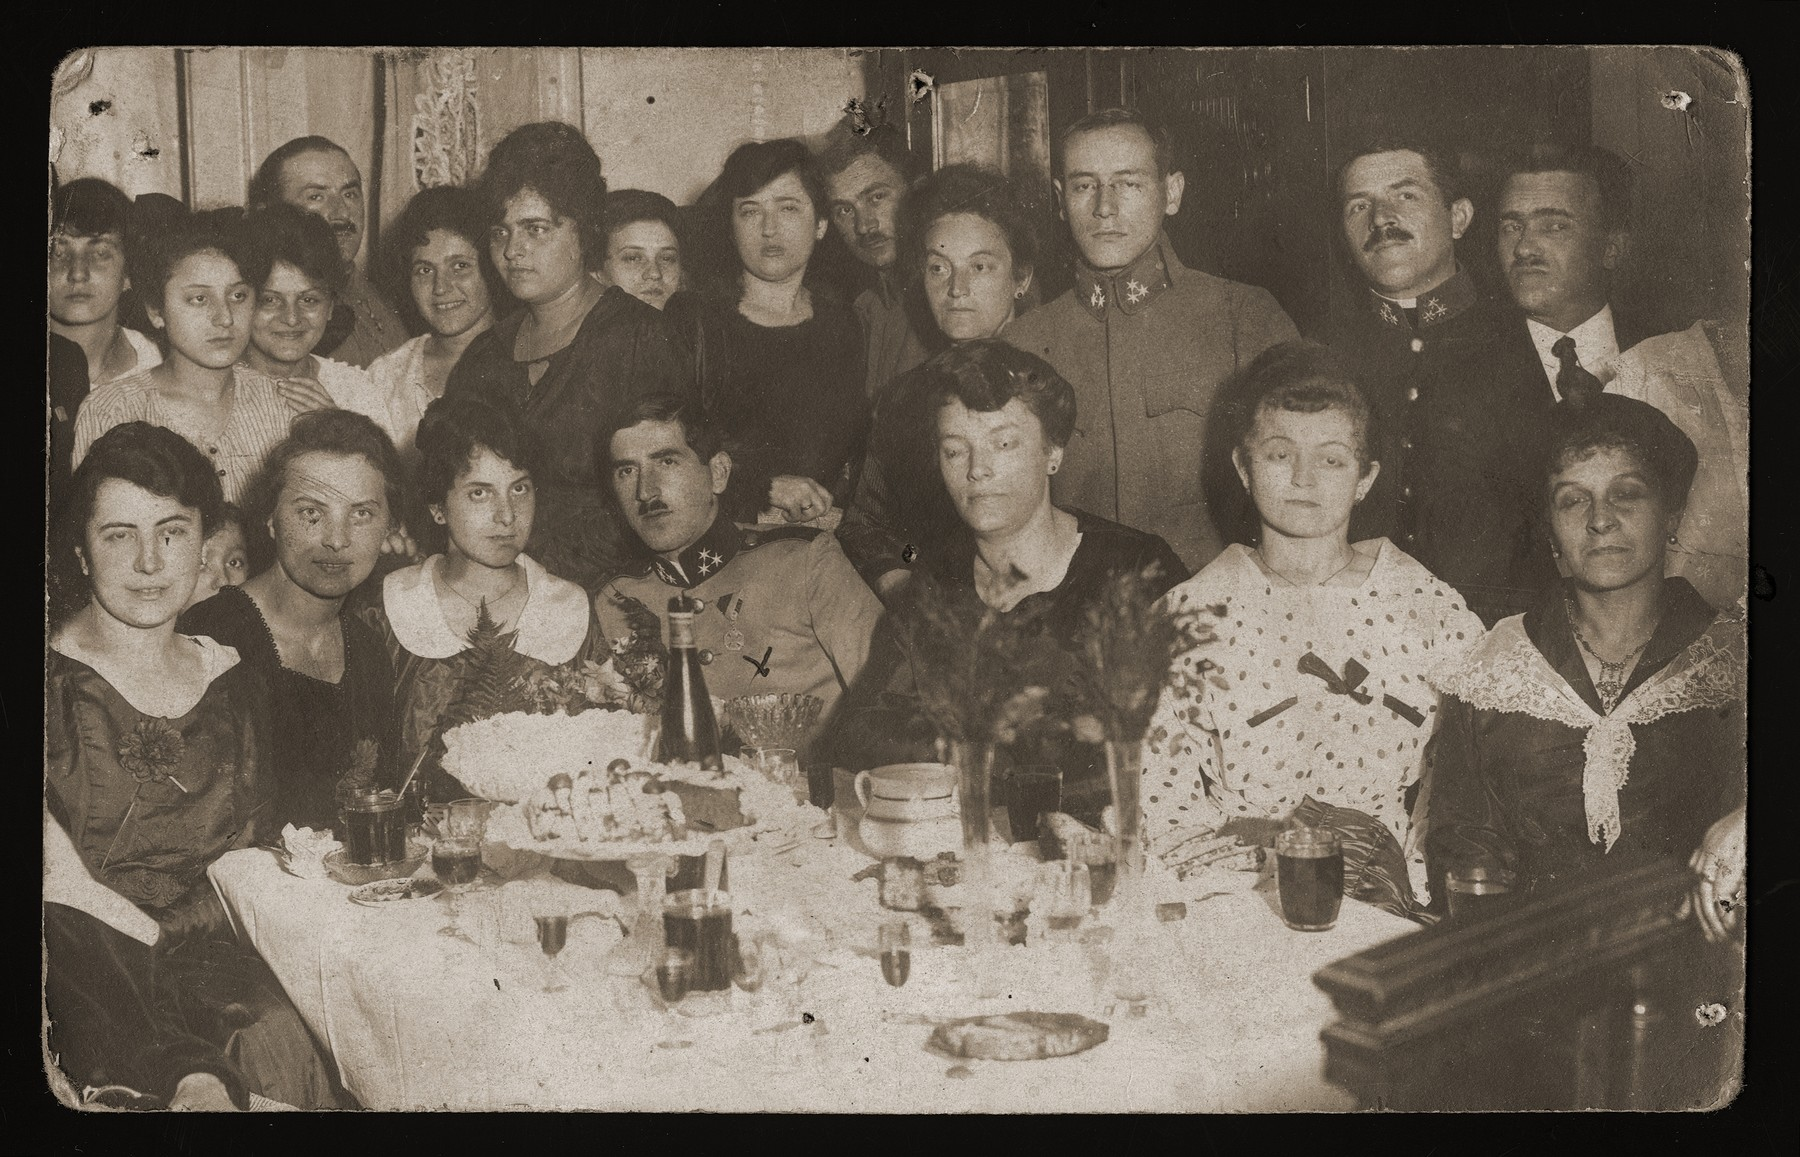 Engagement party for Adolf Gartenberg and Hania Pemstein, from Przemyl.    After their marriage they established a photo shop in Przemyl.  They later returned to Drohobycz and were killed during the Holocaust.